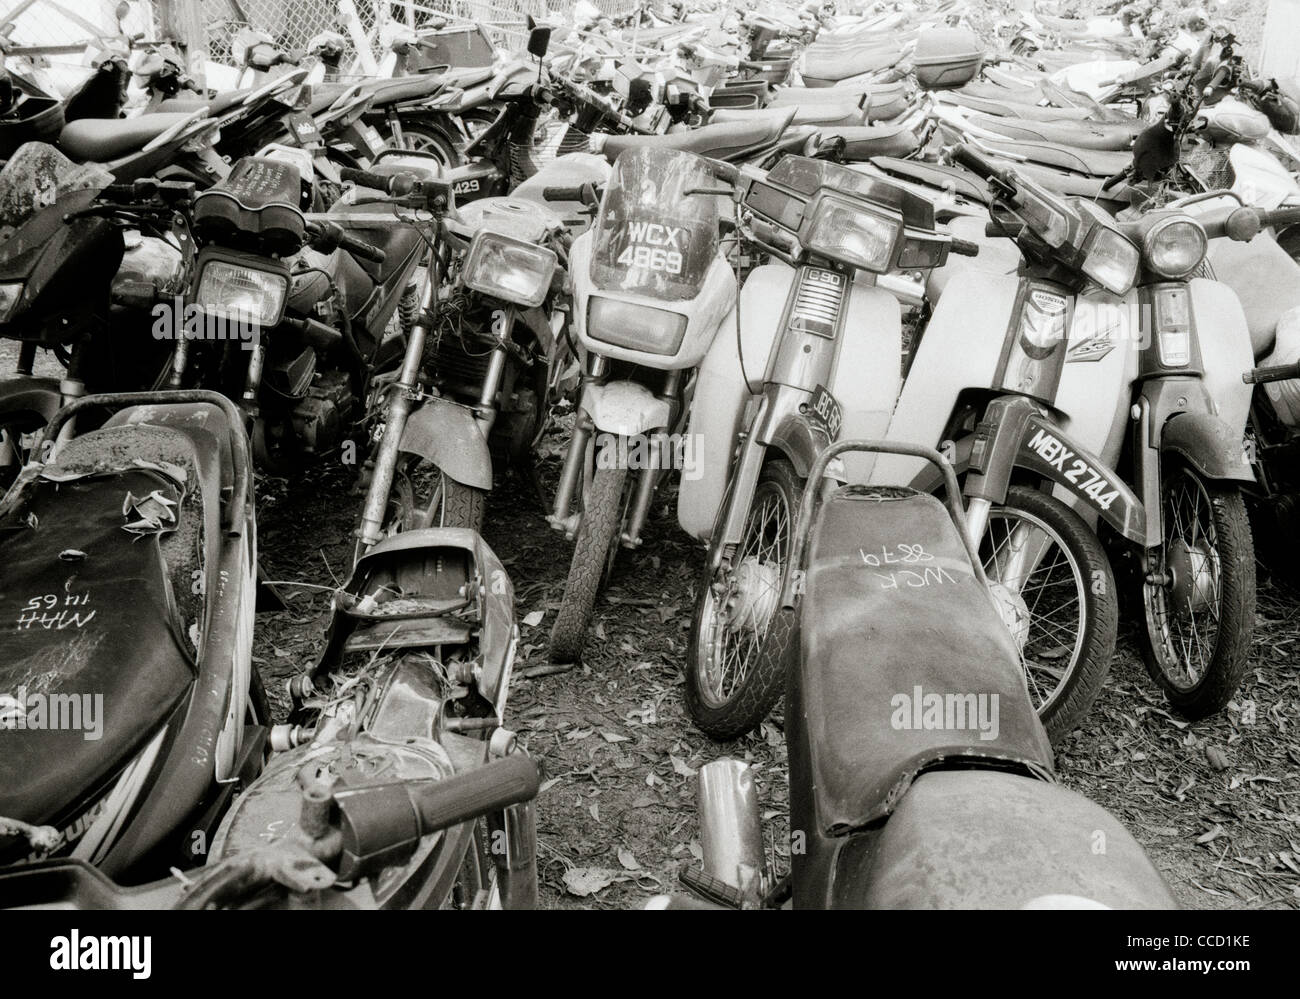 Documentary Photography - Motorbike scrapyard In Melaka Malacca in Malaysia in Southeast Asia Far East. Vespa Moped - Stock Image